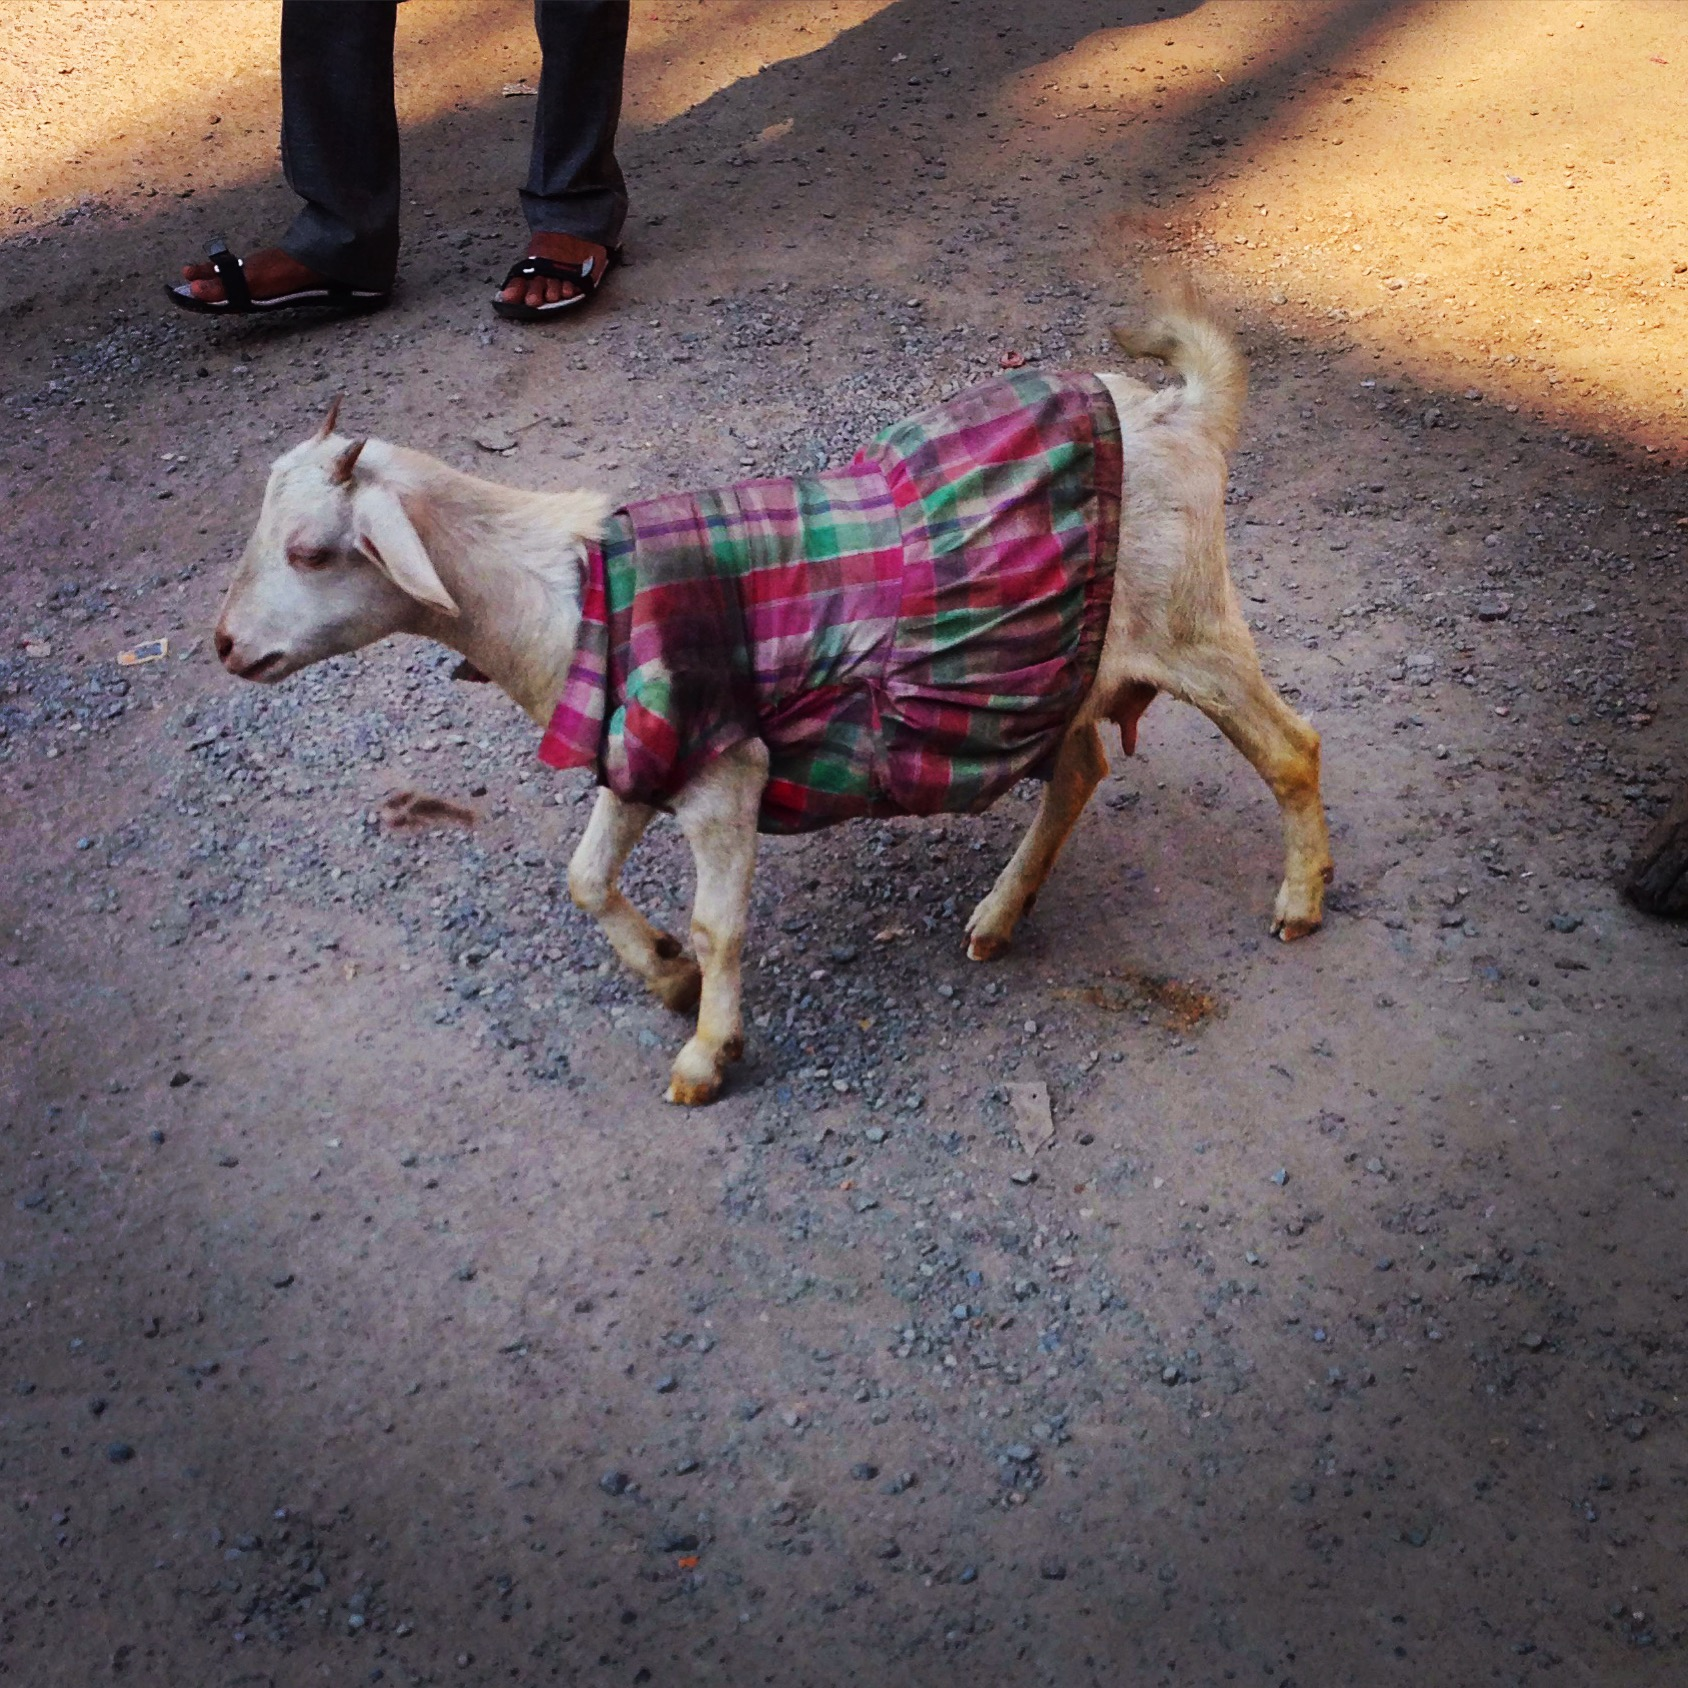 A goat wearing a dress in Varanasi, India